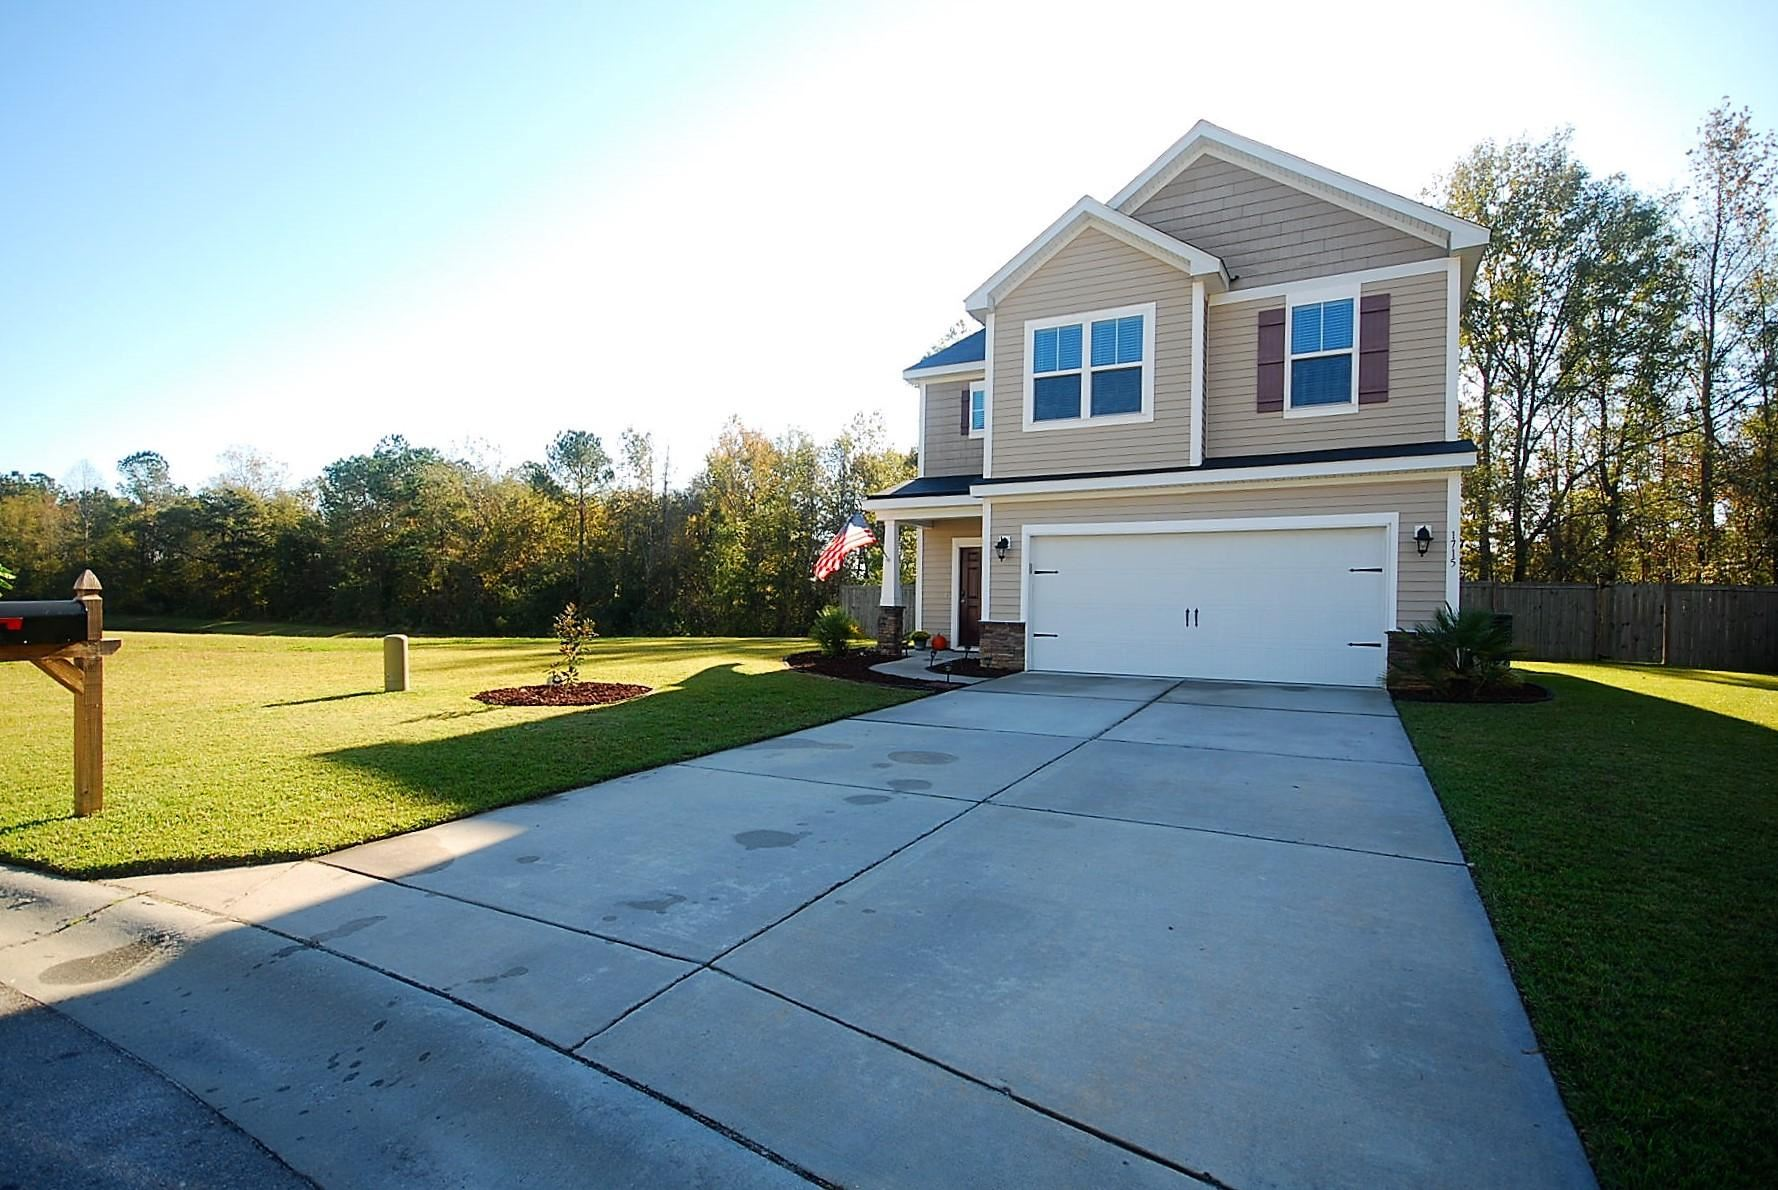 Photo of 1715 Eider Down Drive, Summerville, SC 29483 (MLS # 20032125)